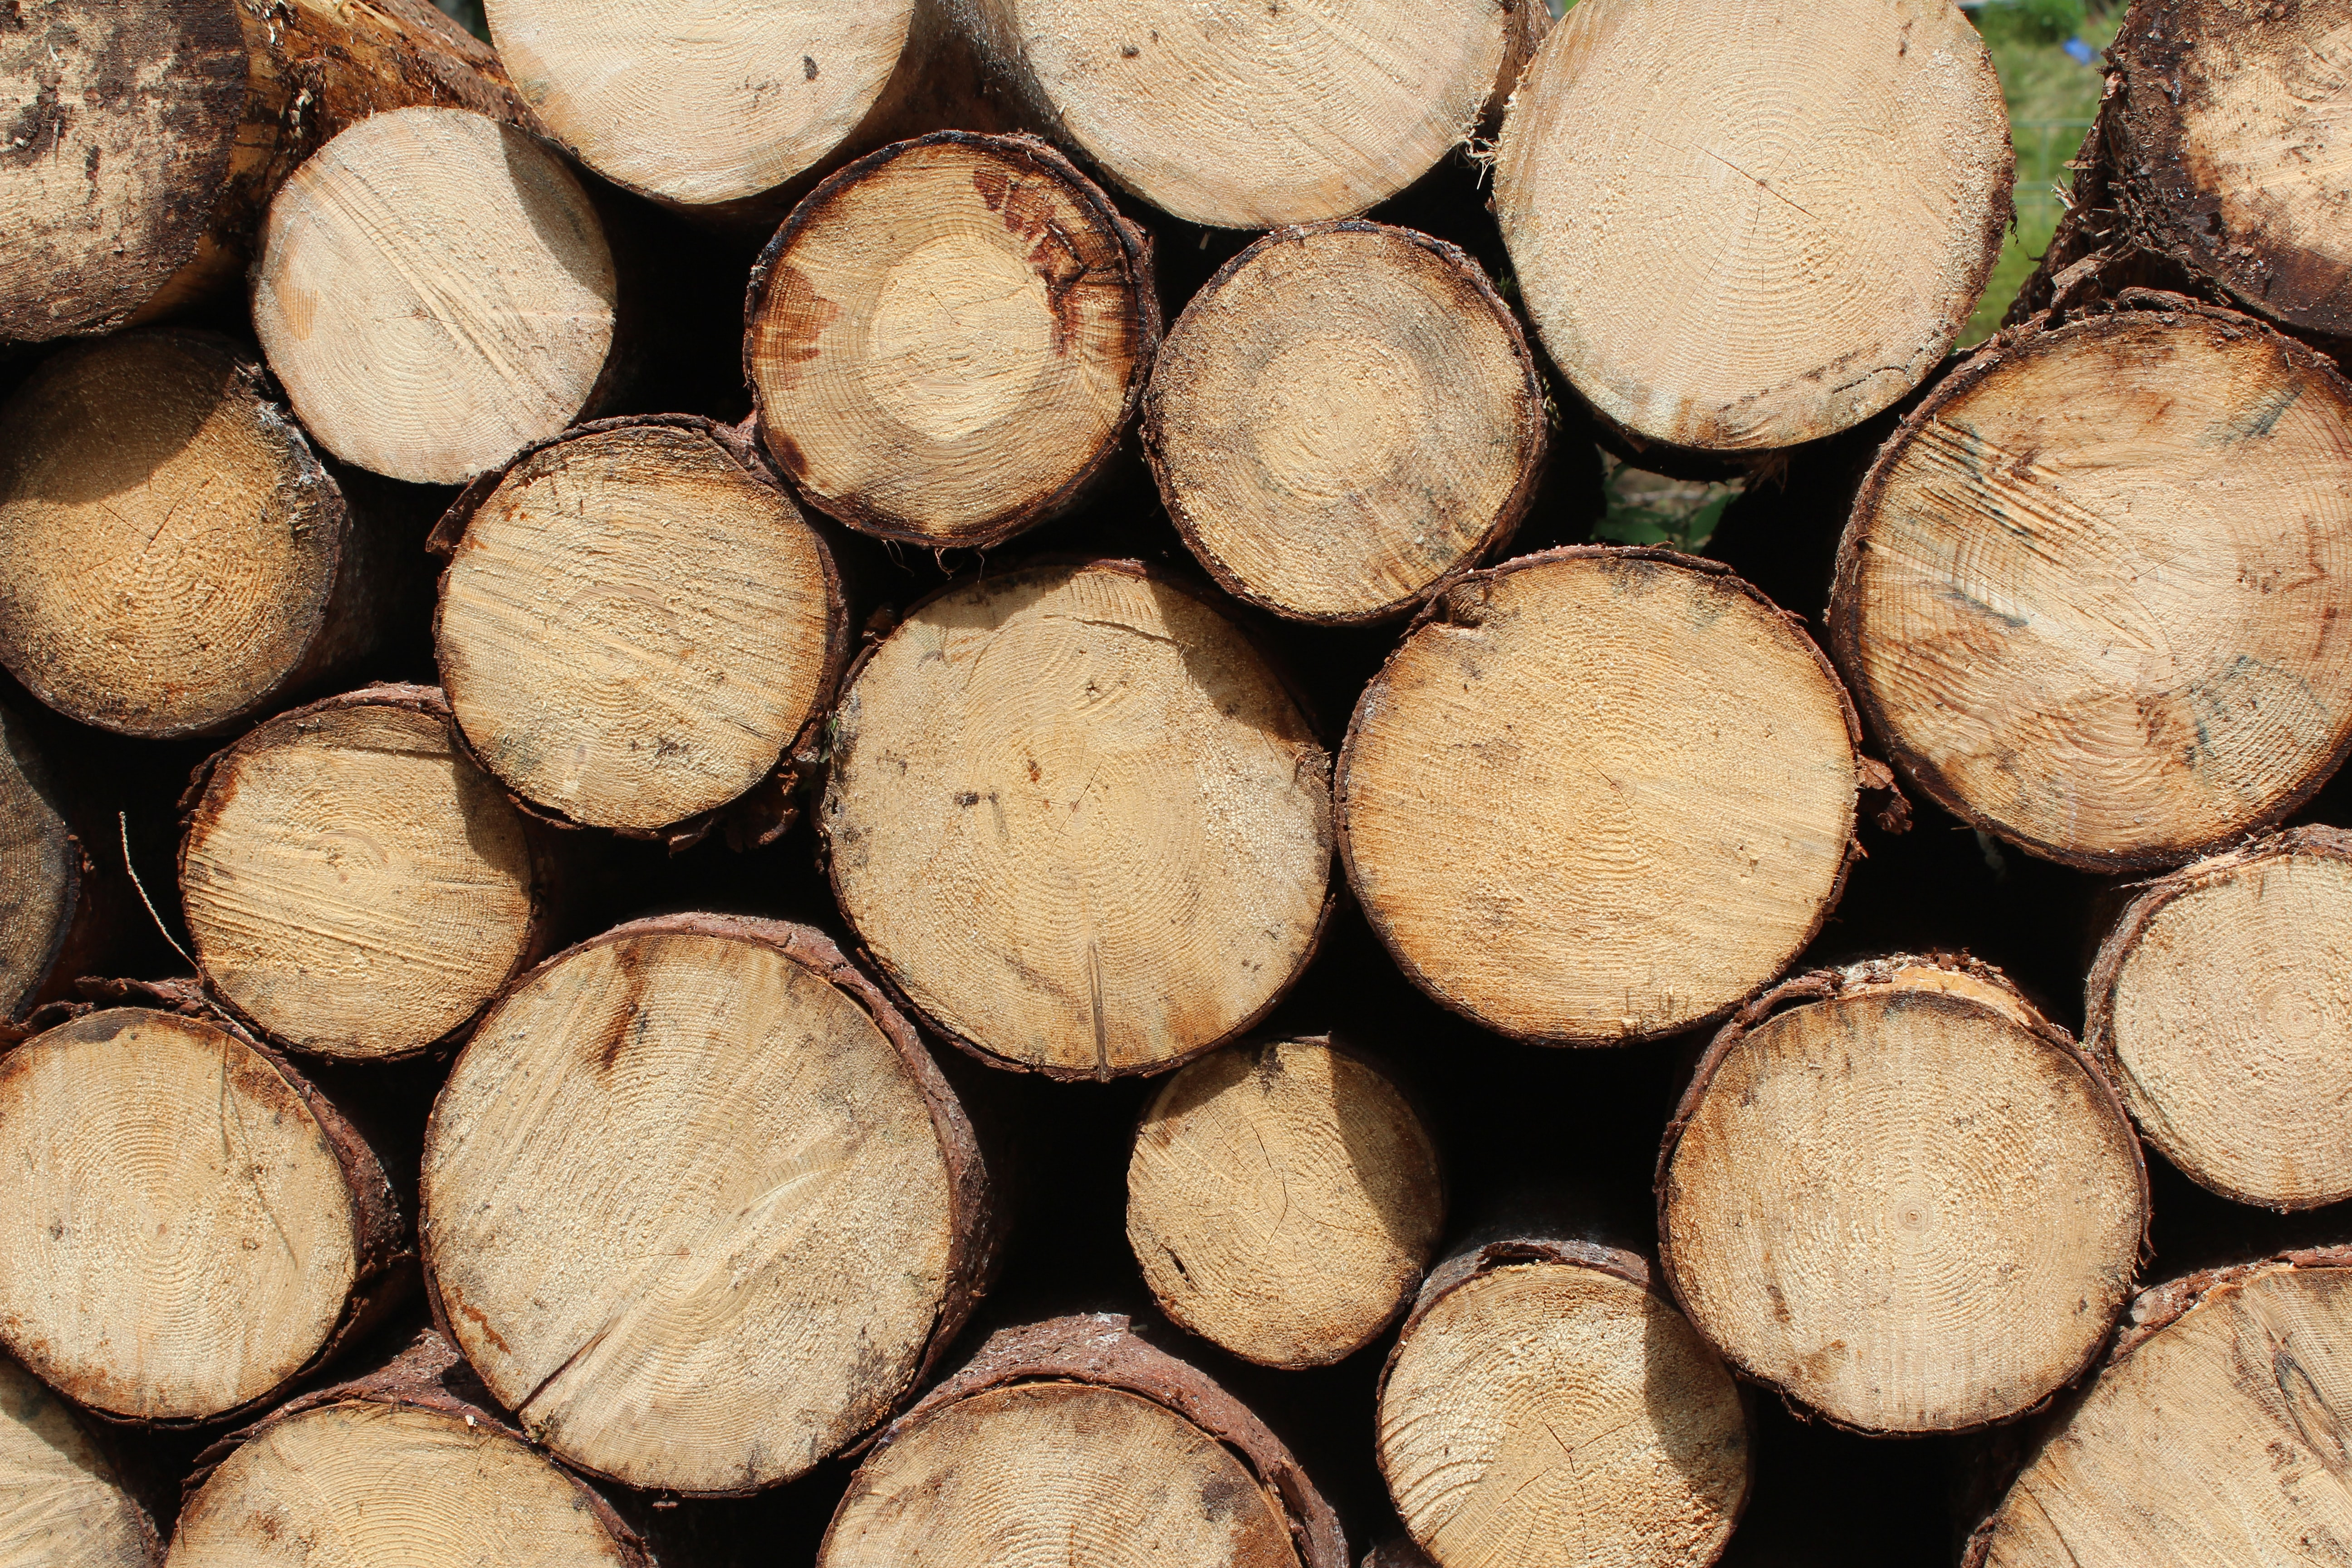 A pile of thick sawn logs stacked on top of each other